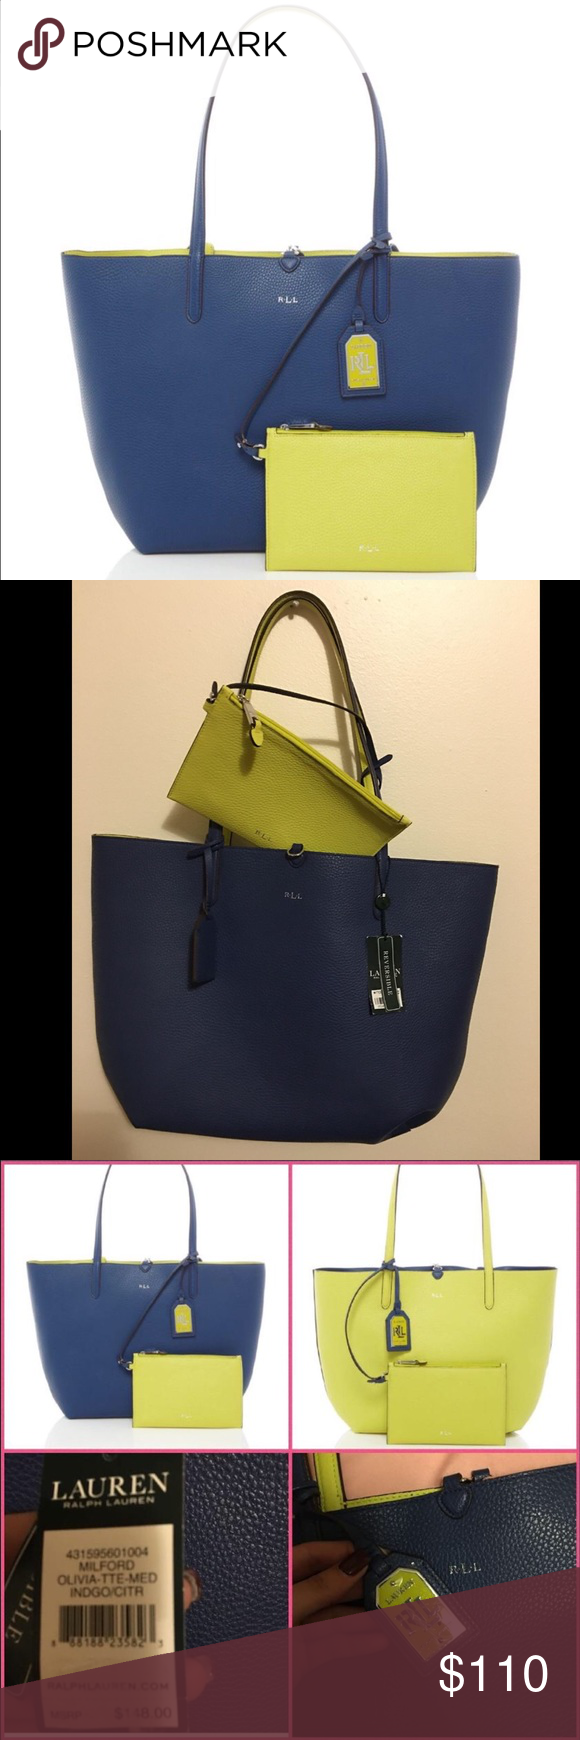 9da0f4f7908 ON HOLD BNWT Ralph Lauren reversible tote Brand new with tag! Genuine leather  Lauren Ralph Lauren Milford Reversible Blue Yellow Tote With Pouch.